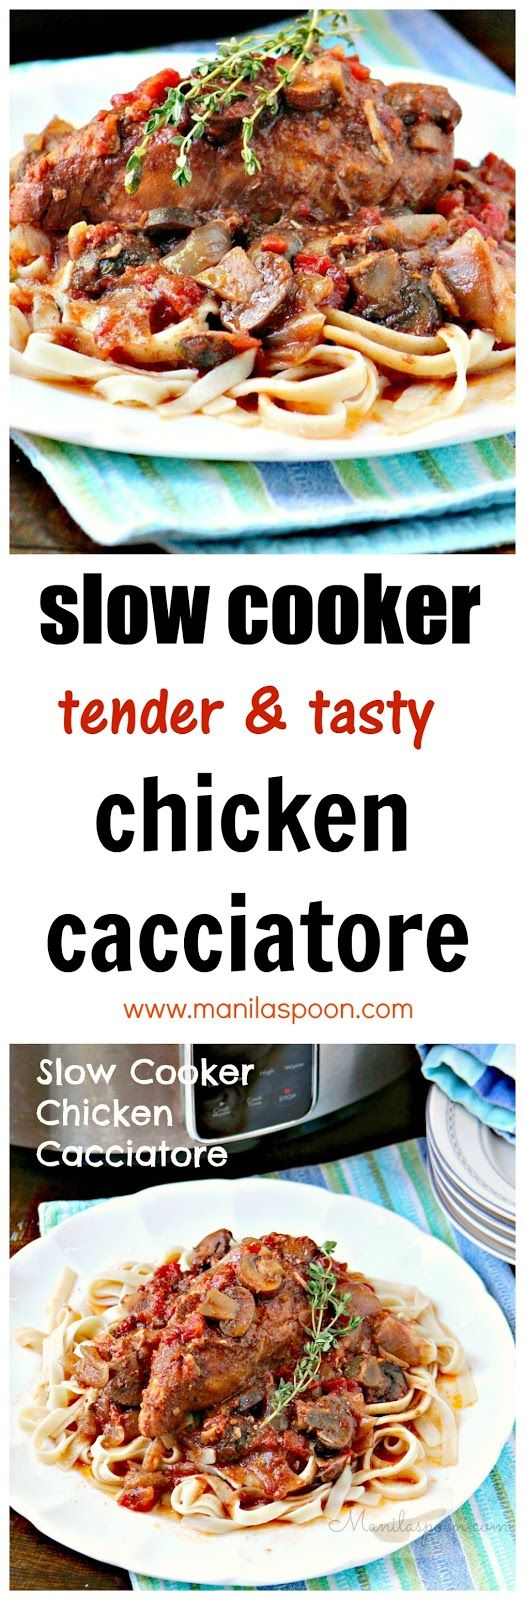 Melt-in-your-mouth tender and delicious Slow Cooker Chicken Cacciatore. Serve over pasta or rice.